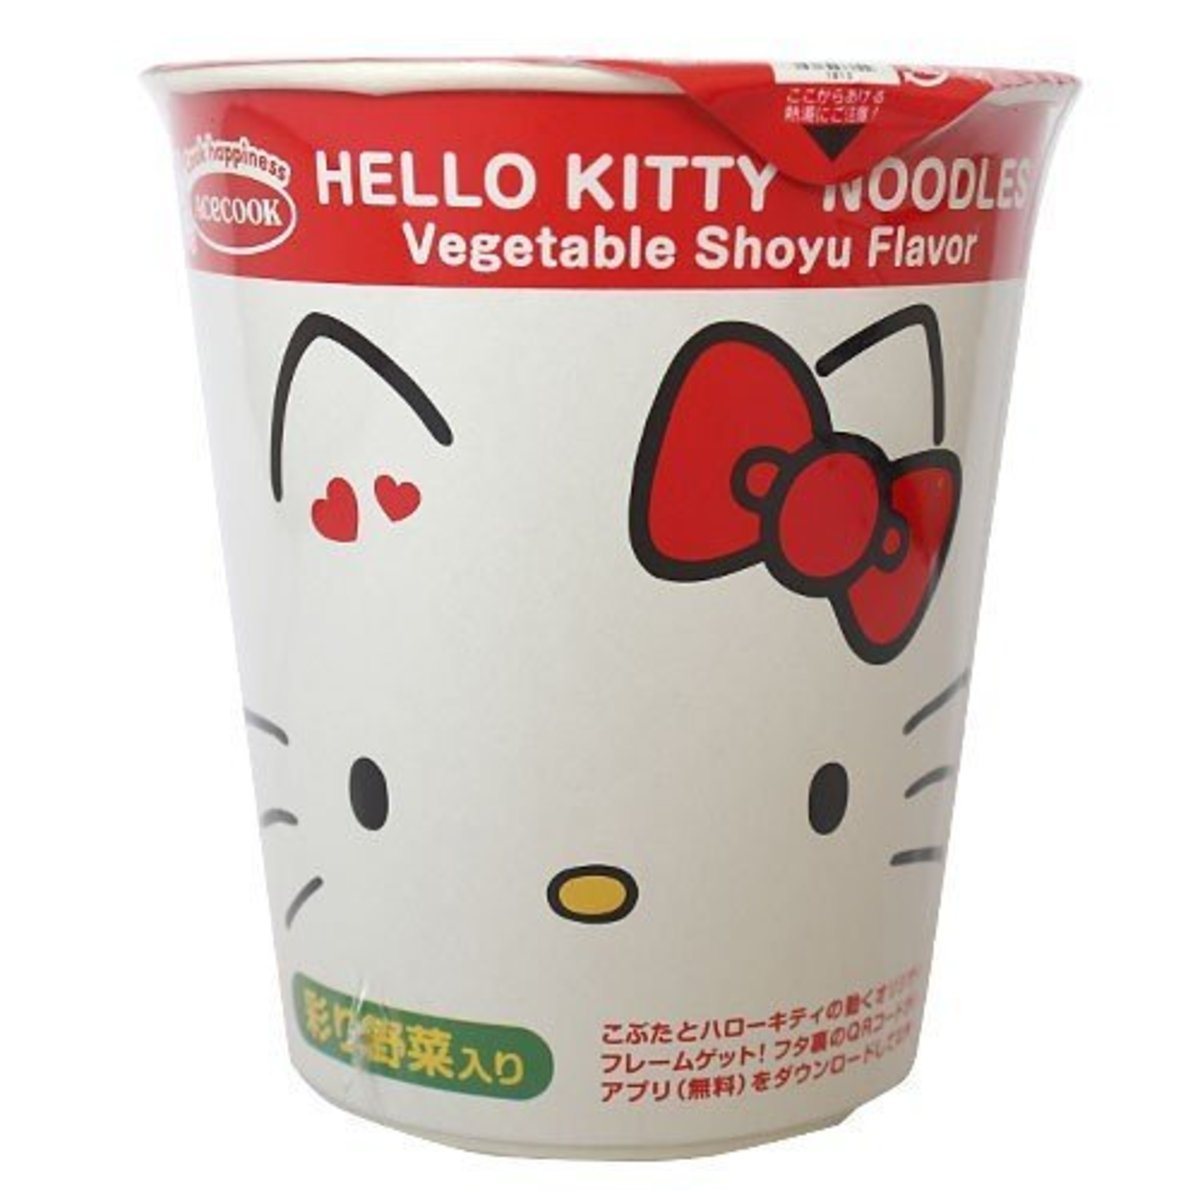 (Red) Japan ACECOOK Hello Kitty Vegetable Shoyu Flavor Cup Noodle x 1pc